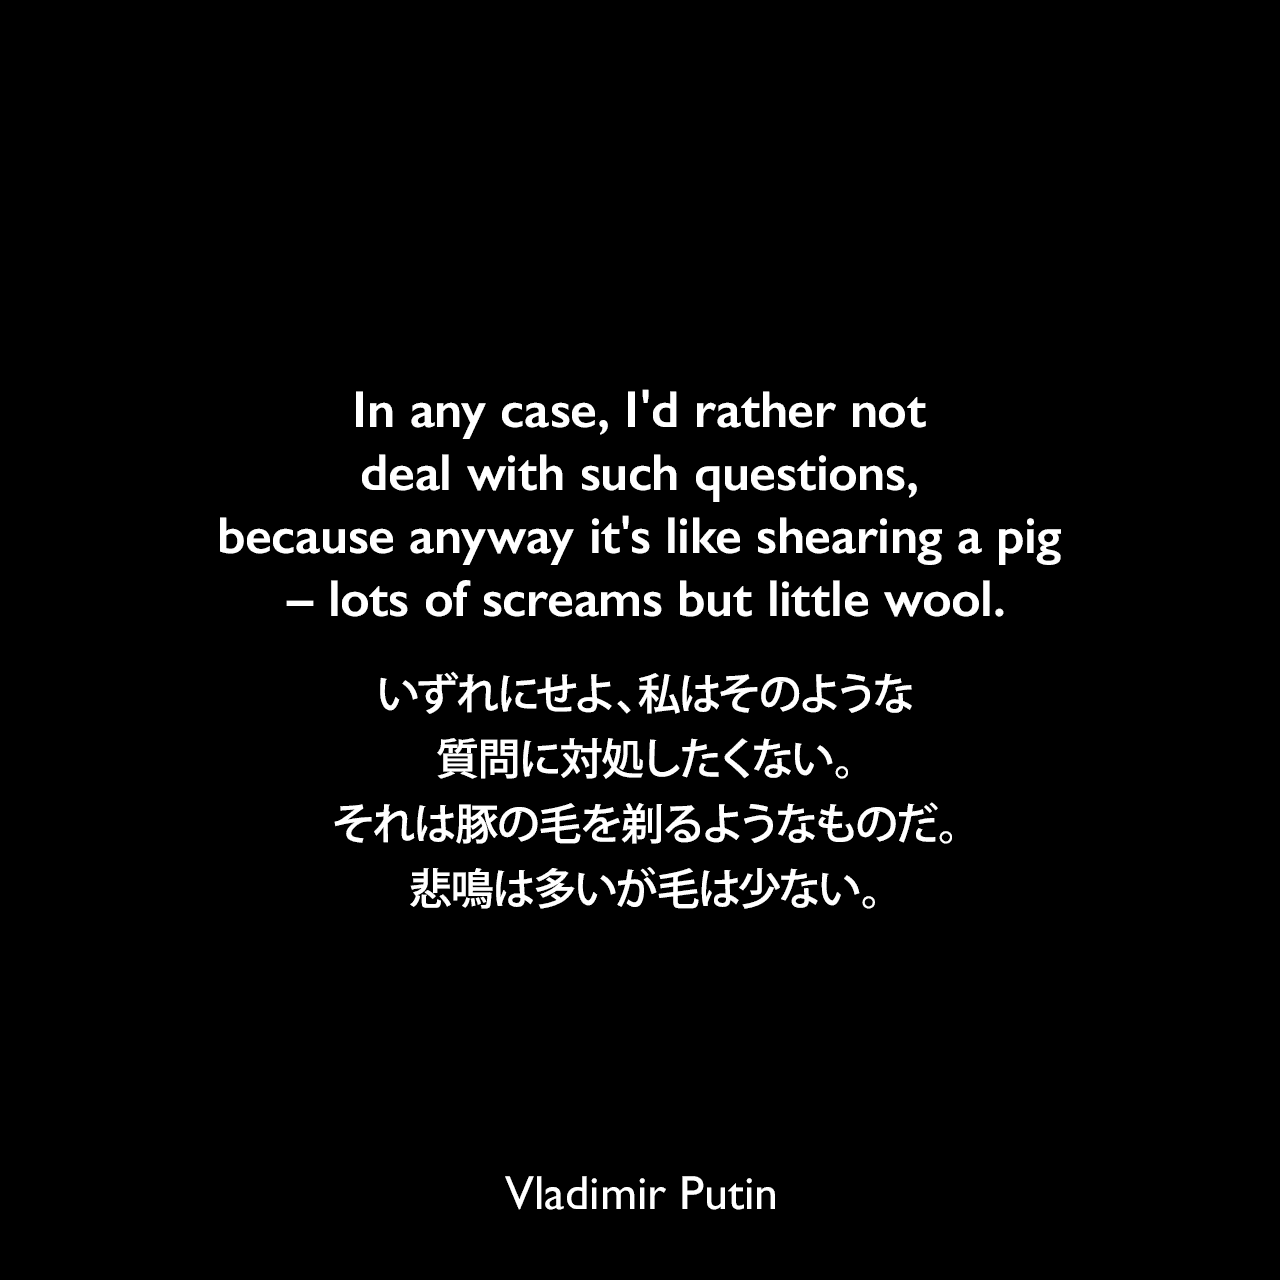 In any case, I'd rather not deal with such questions, because anyway it's like shearing a pig – lots of screams but little wool.いずれにせよ、私はそのような質問に対処したくない。それは豚の毛を剃るようなものだ。悲鳴は多いが毛は少ない。- 2013年6月 ガーディアン誌、エドワード・スノーデンの件でアメリカとの交渉についてVladimir Putin